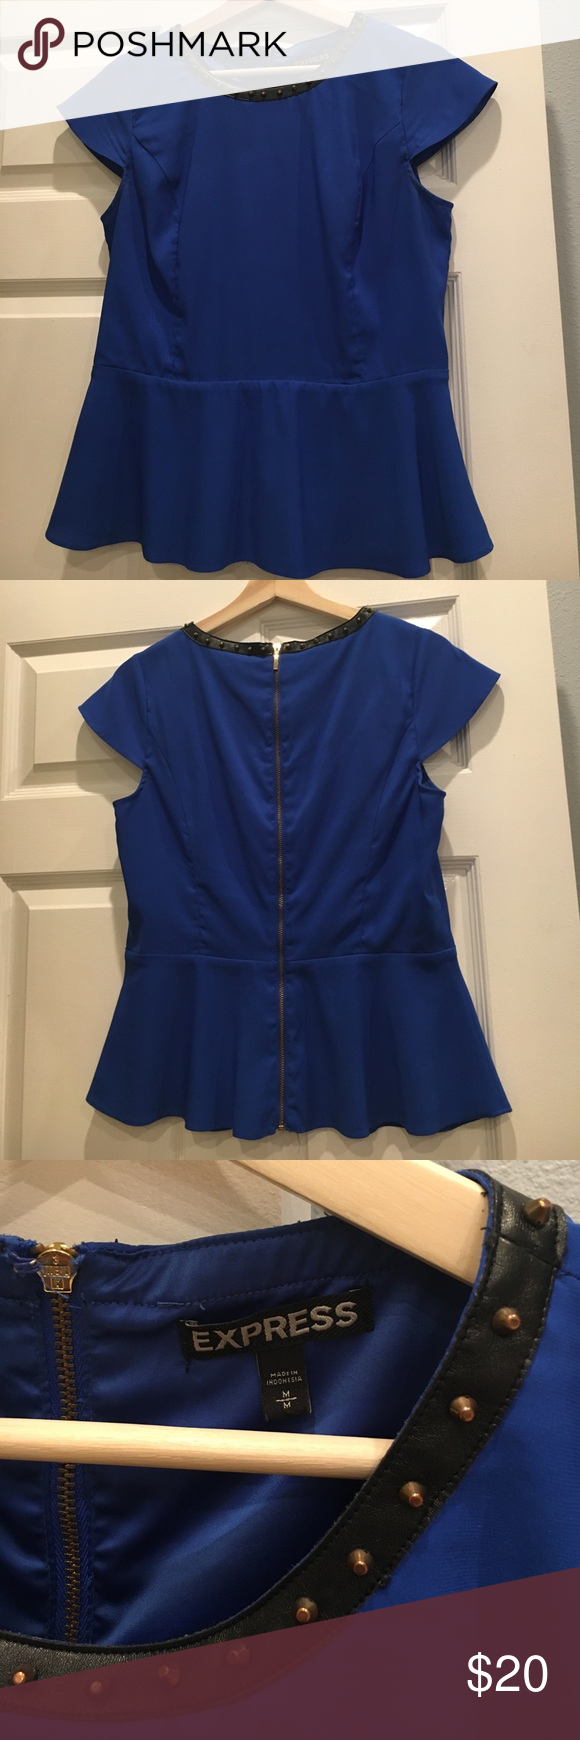 Express Zip Back Cobalt Blue Peplum Blouse Peplum style in a beautiful cobalt blue and accented with gold studs. Express Tops Blouses